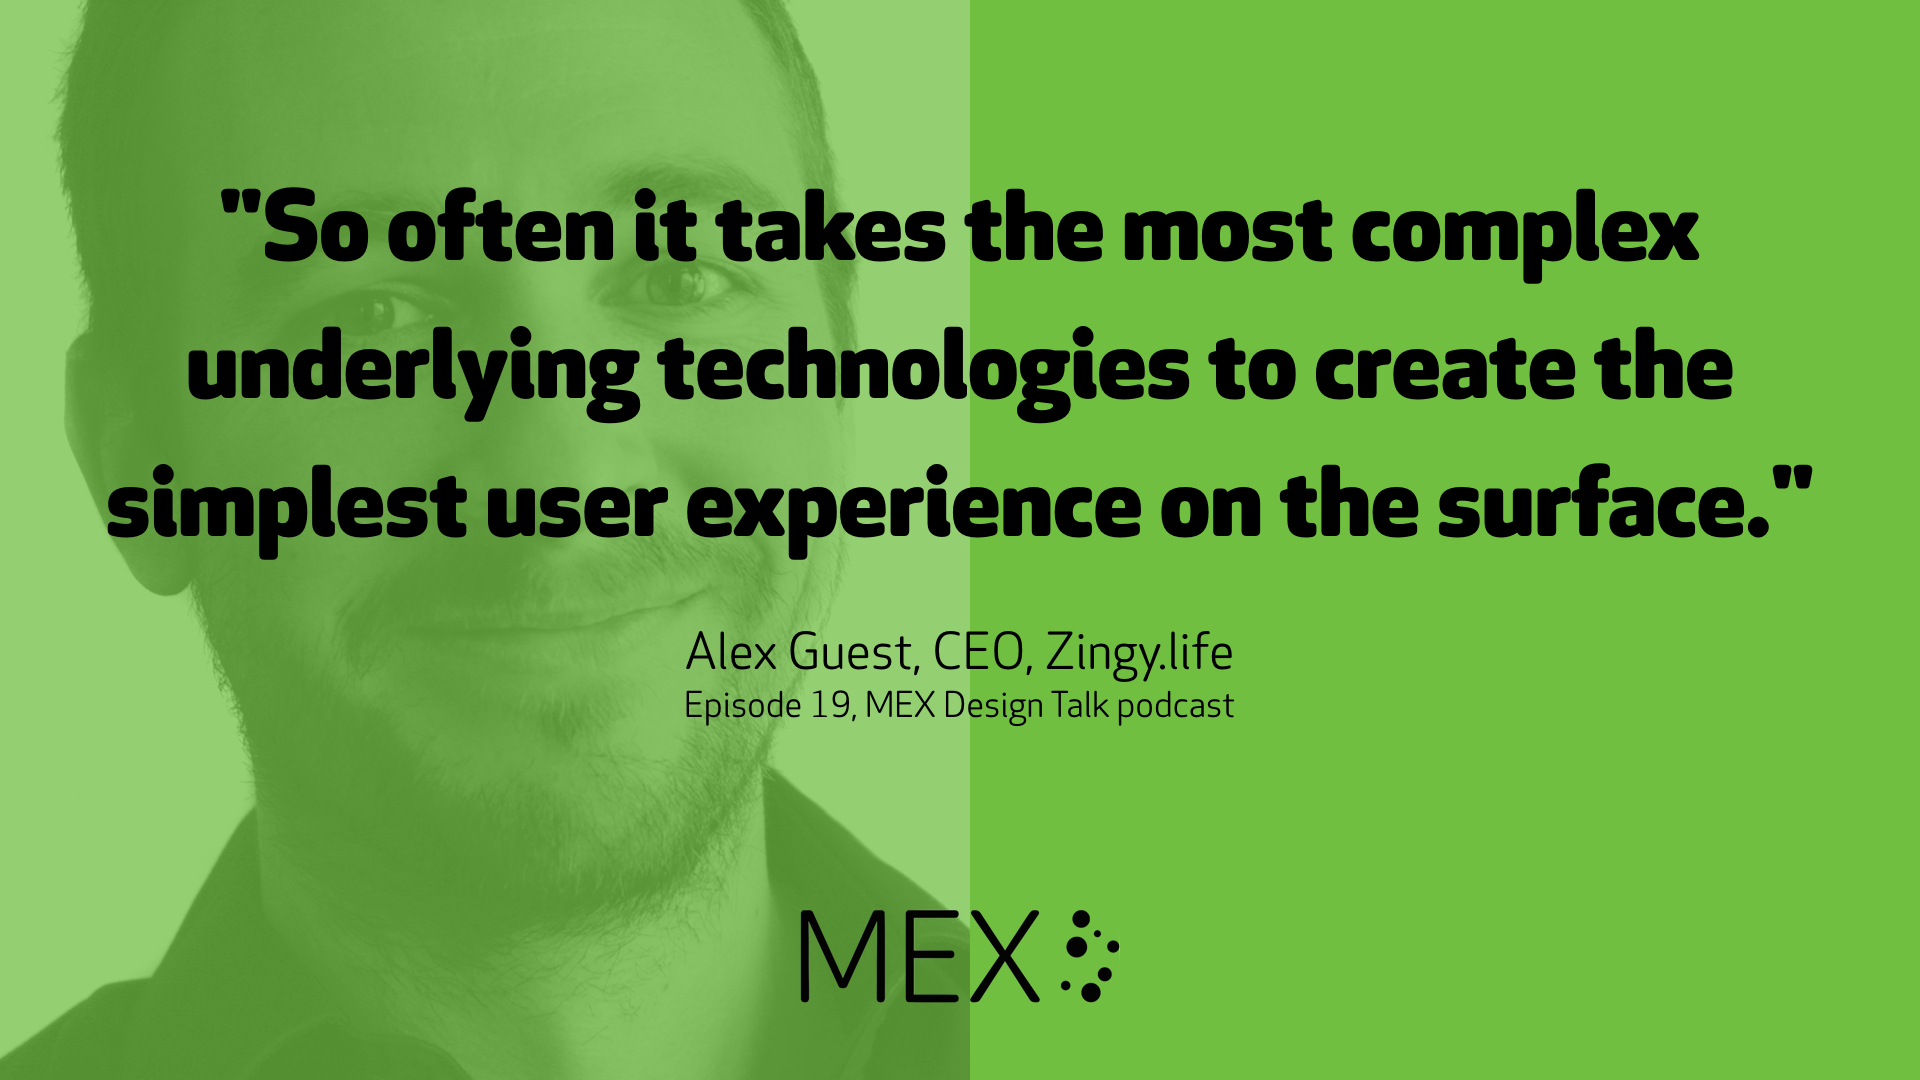 """So often it takes the most complex underlying technologies to create the simplest user experience on the surface."" -- Alex Guest, CEO, Zingy.life, Episode 19, MEX Design Talk podcast"